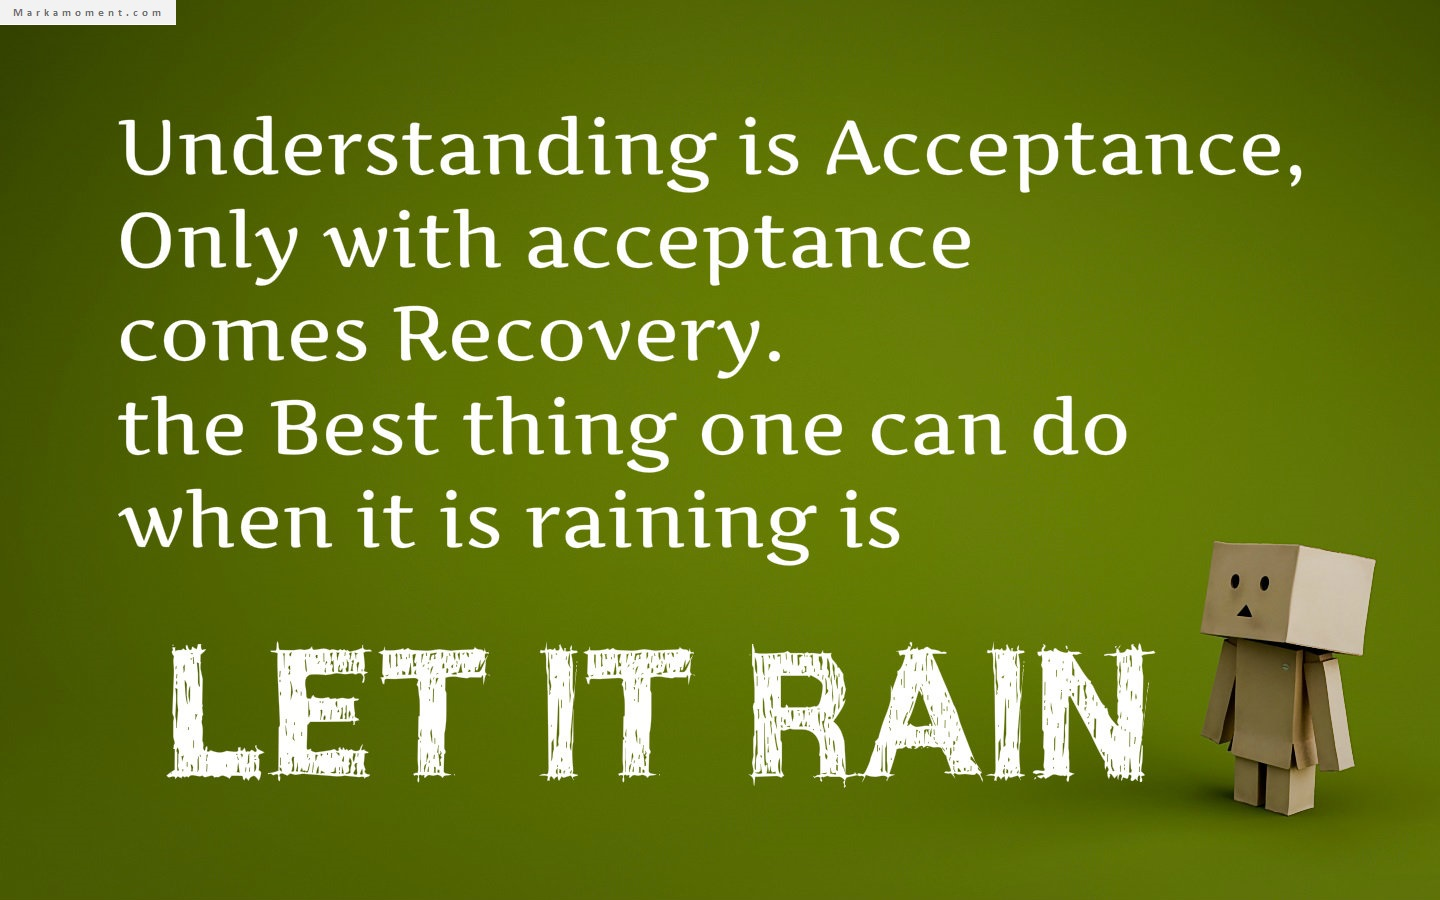 Understanding is the first step to acceptance, only with acceptance comes recovery. The best thing one can do when it is raining is let it rain.